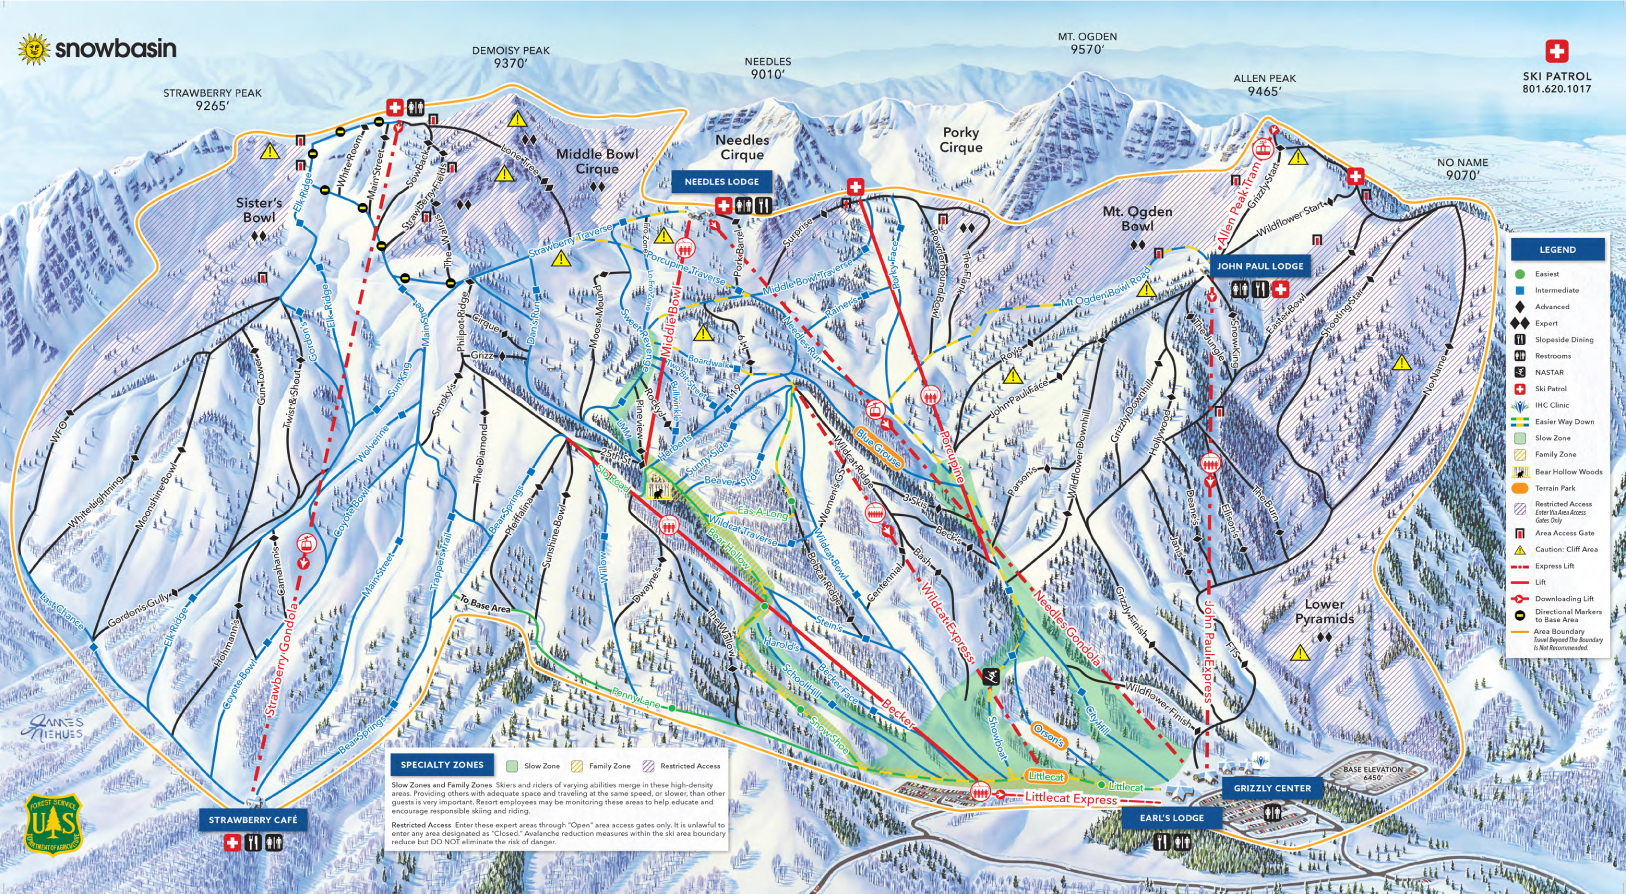 Snowbasin Ski Resort - Map, Weather & Information - Ski Utah on colorado ski country map, summit county colorado map, lake tahoe map, colorado road map, california map, arapahoe basin map, breckenridge map, alaska map, st martin resorts map, bristol mountain ski resort trail map, colorado snowboarding, colorado map with cities, ski granby ranch map, colorado hotels map, colorado state map, grenada resorts map, vail map, colorado skiing, royal gorge canon city colorado map,